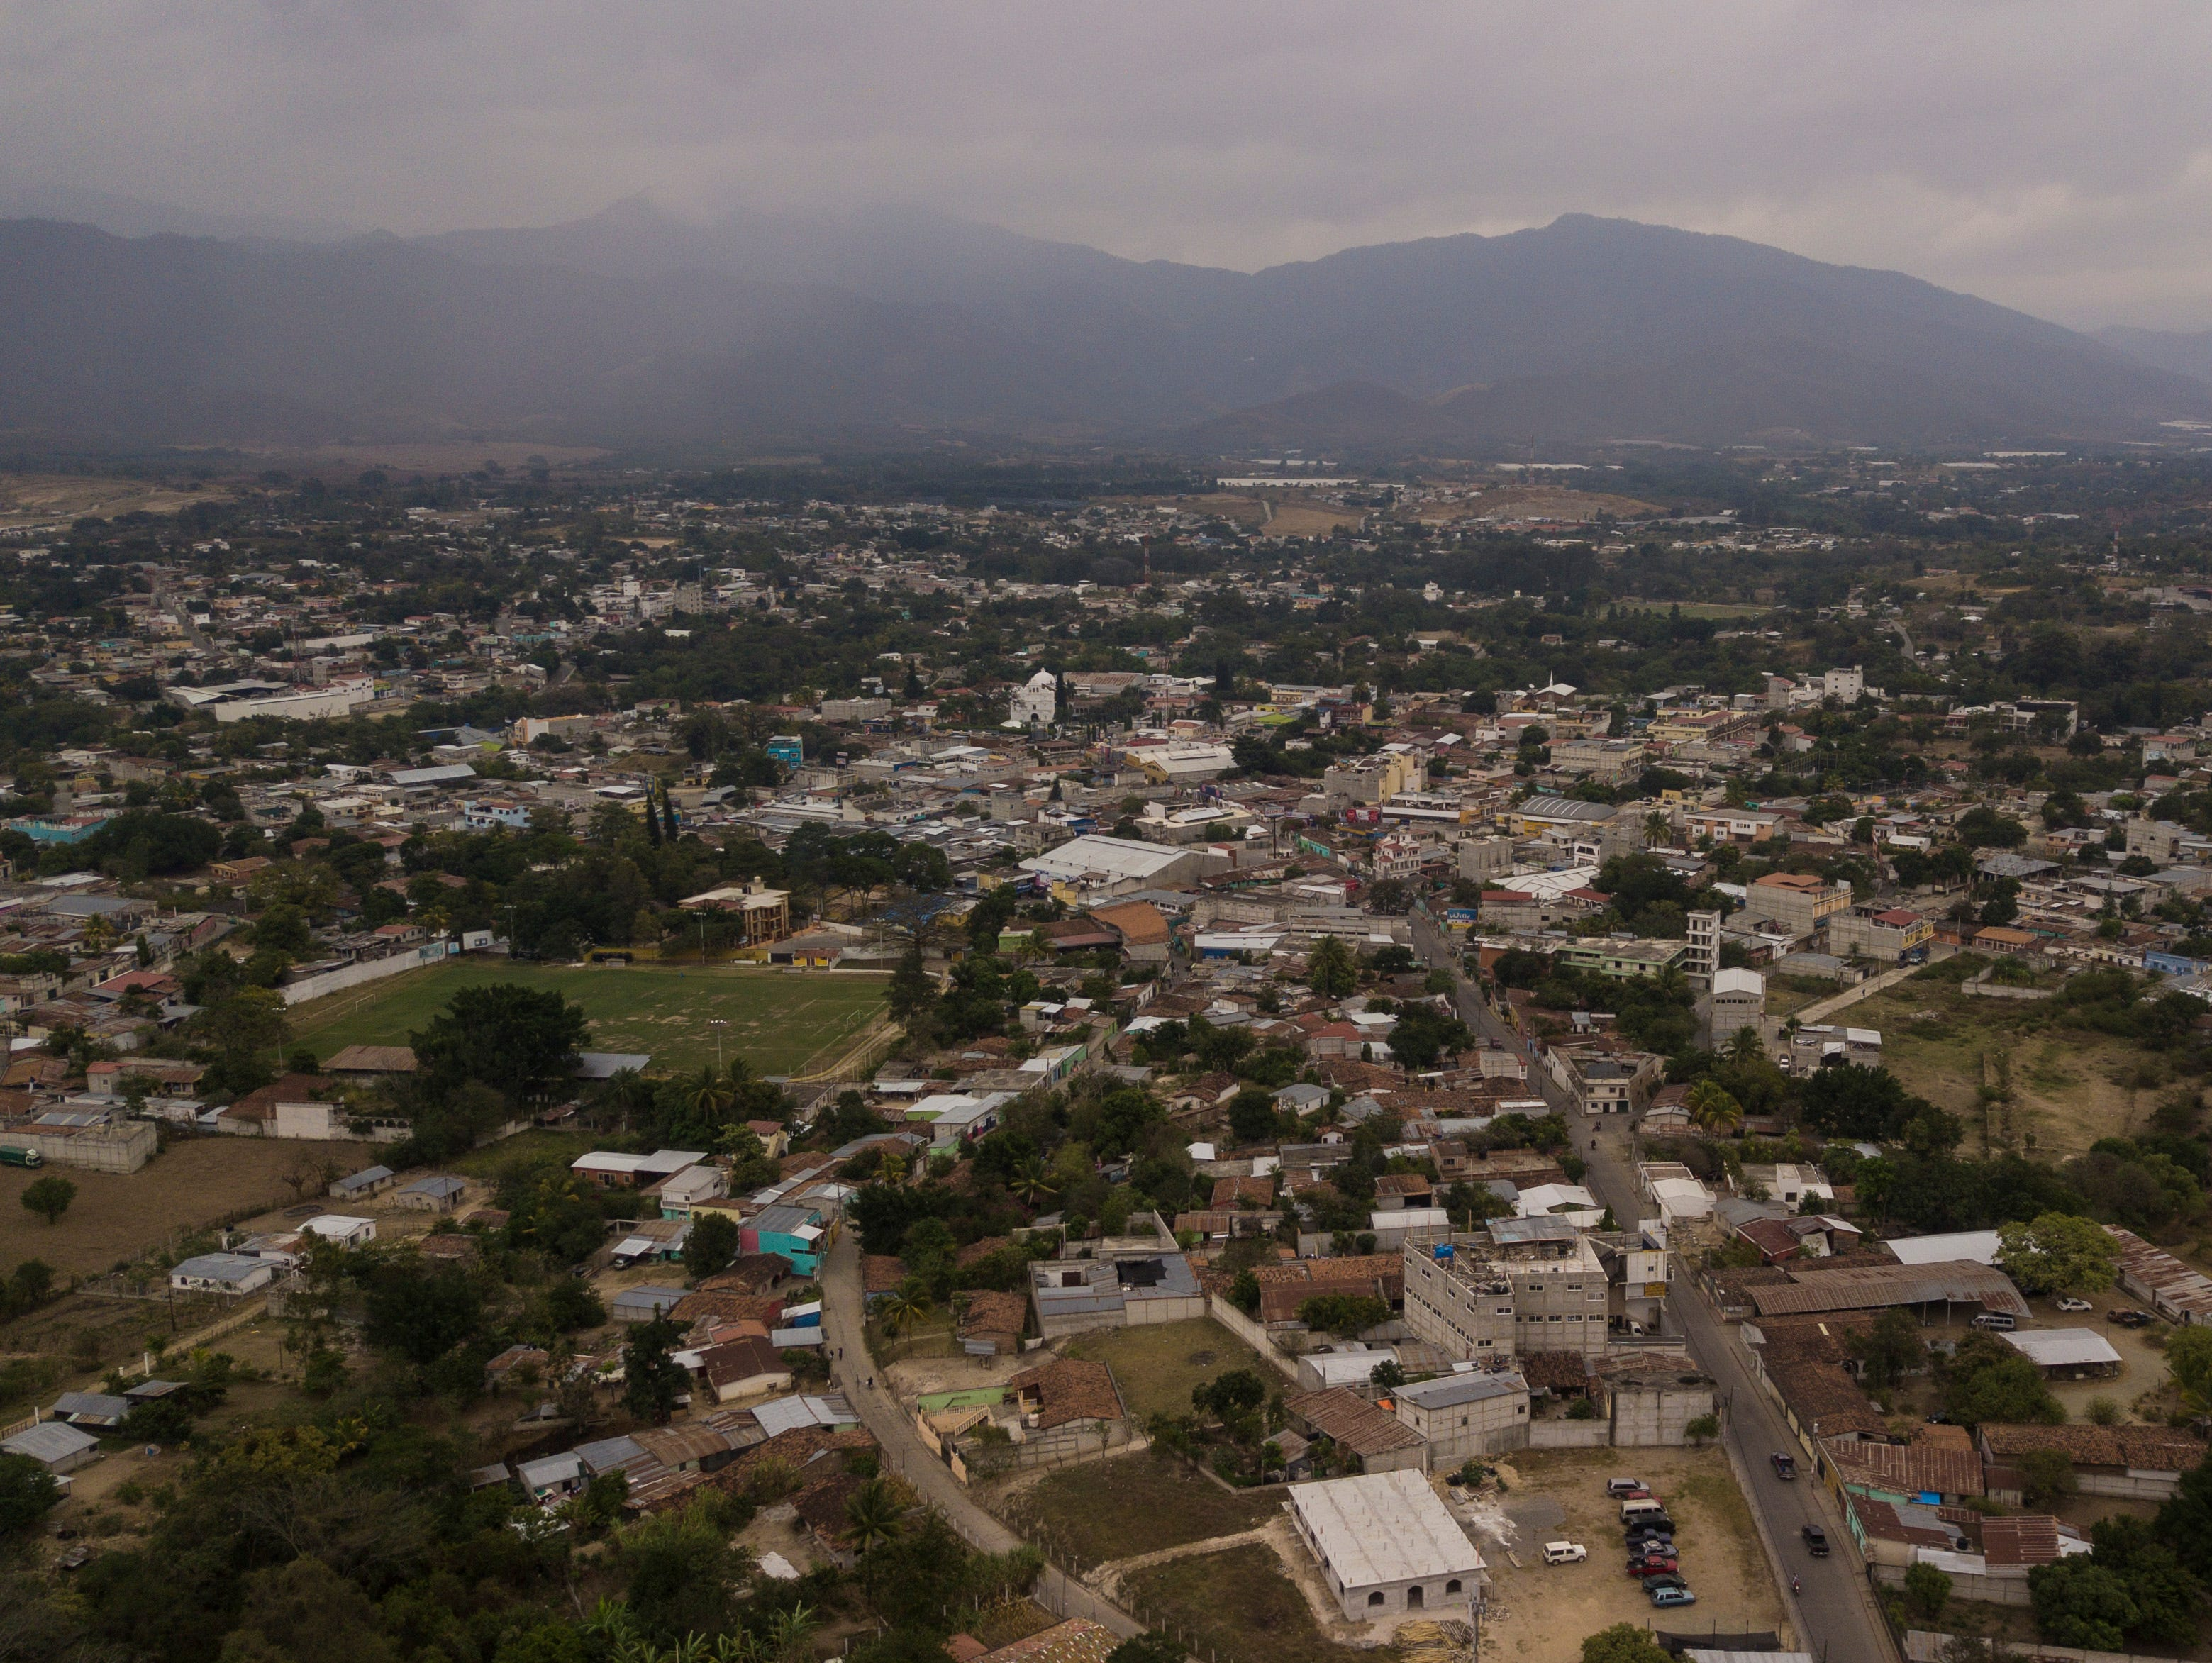 An overview of Salamá, Guatemala, a city with a population around 40,000 and located a few hours northeast of Guatemala City. Each year COTA visits areas like Salamá where residents are less likely to have access to healthcare and the need is greatest. Jan. 20, 2019